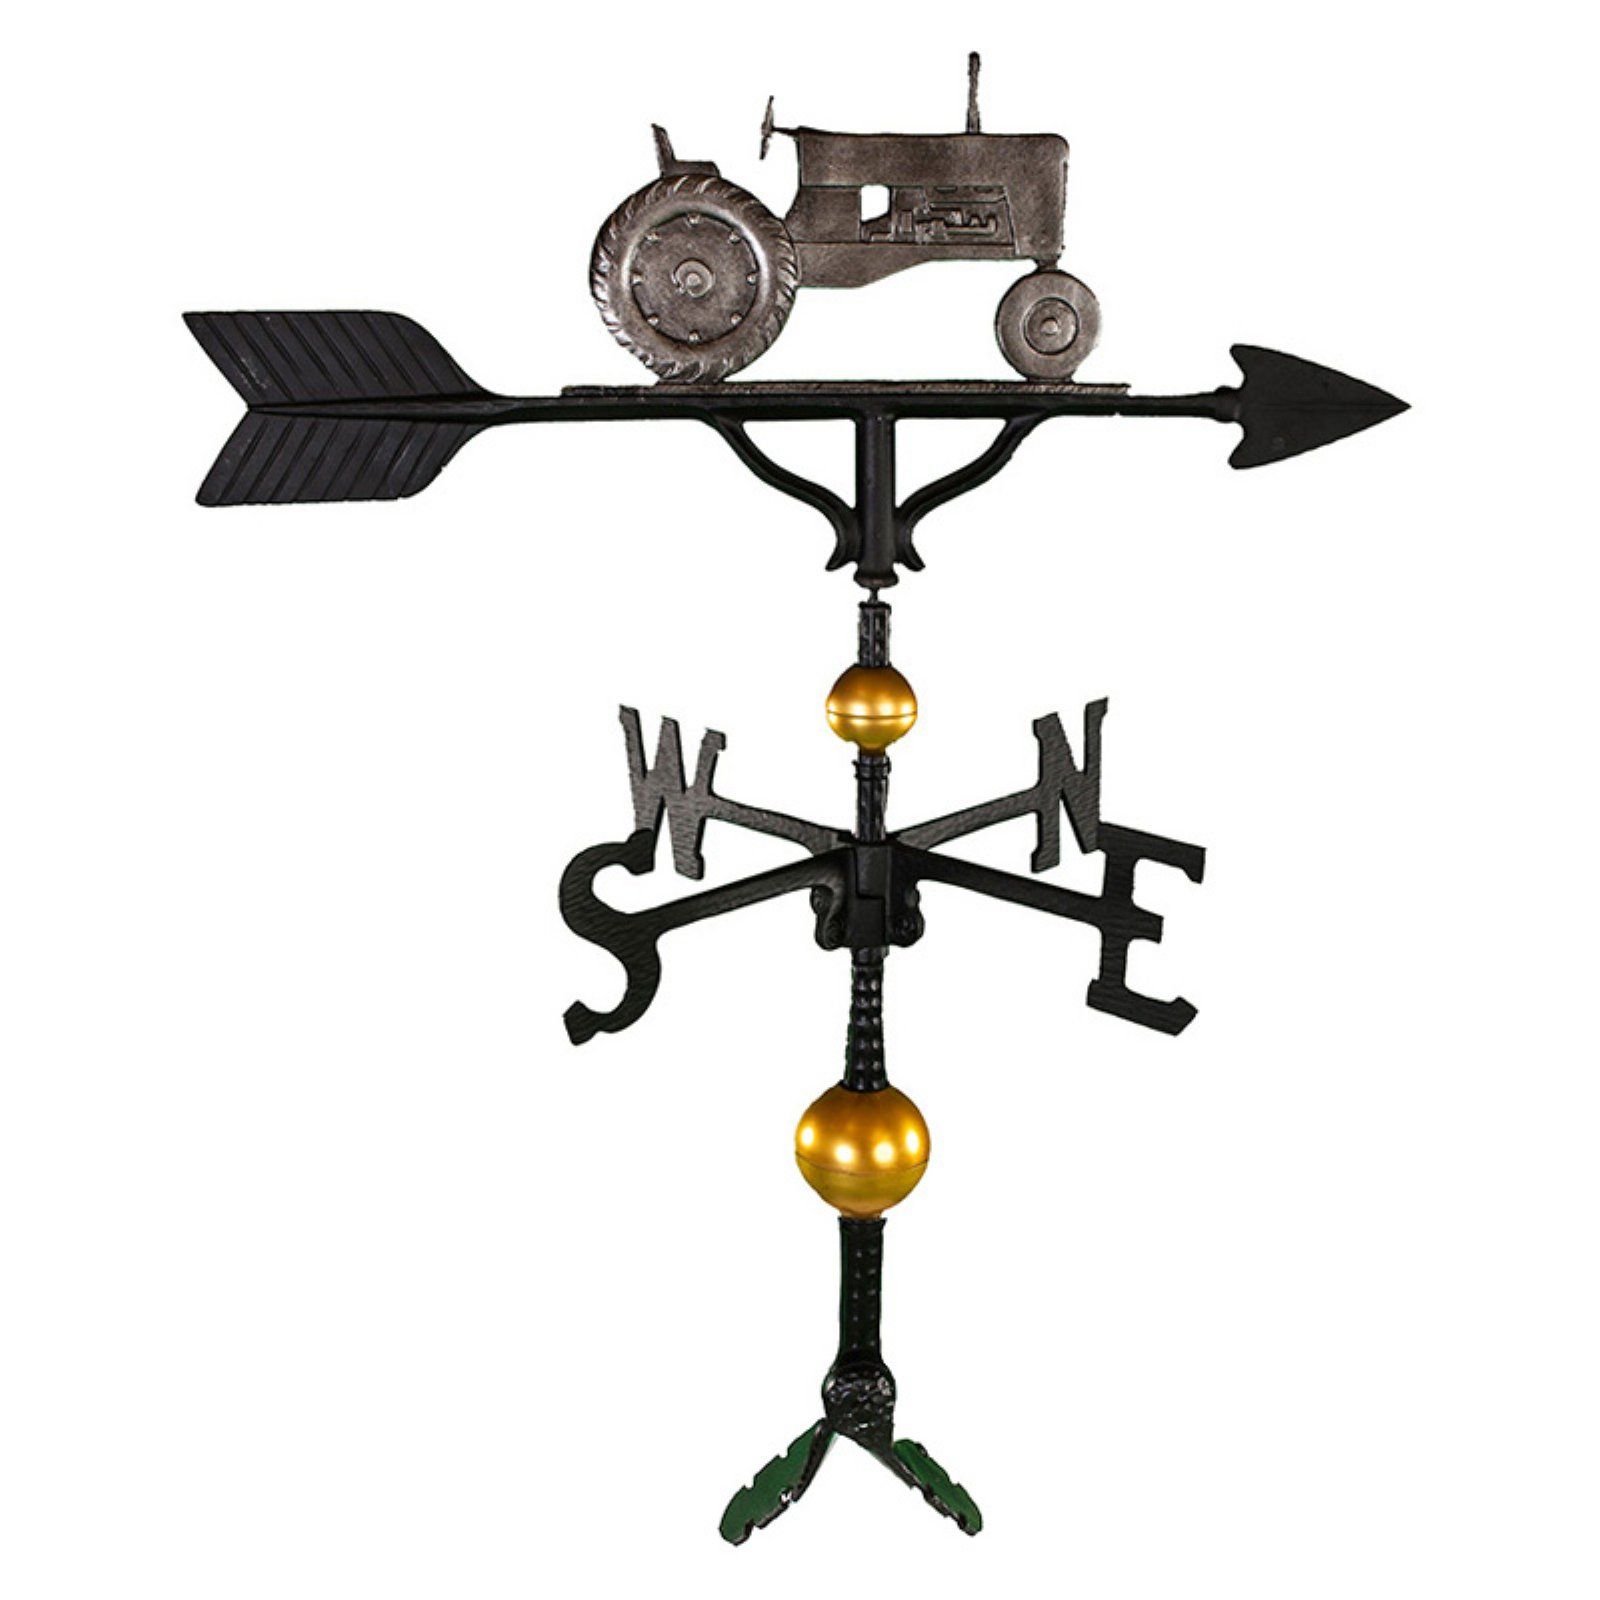 Deluxe Swedish Iron Tractor Weathervane 32 in. by Montague Metal Products